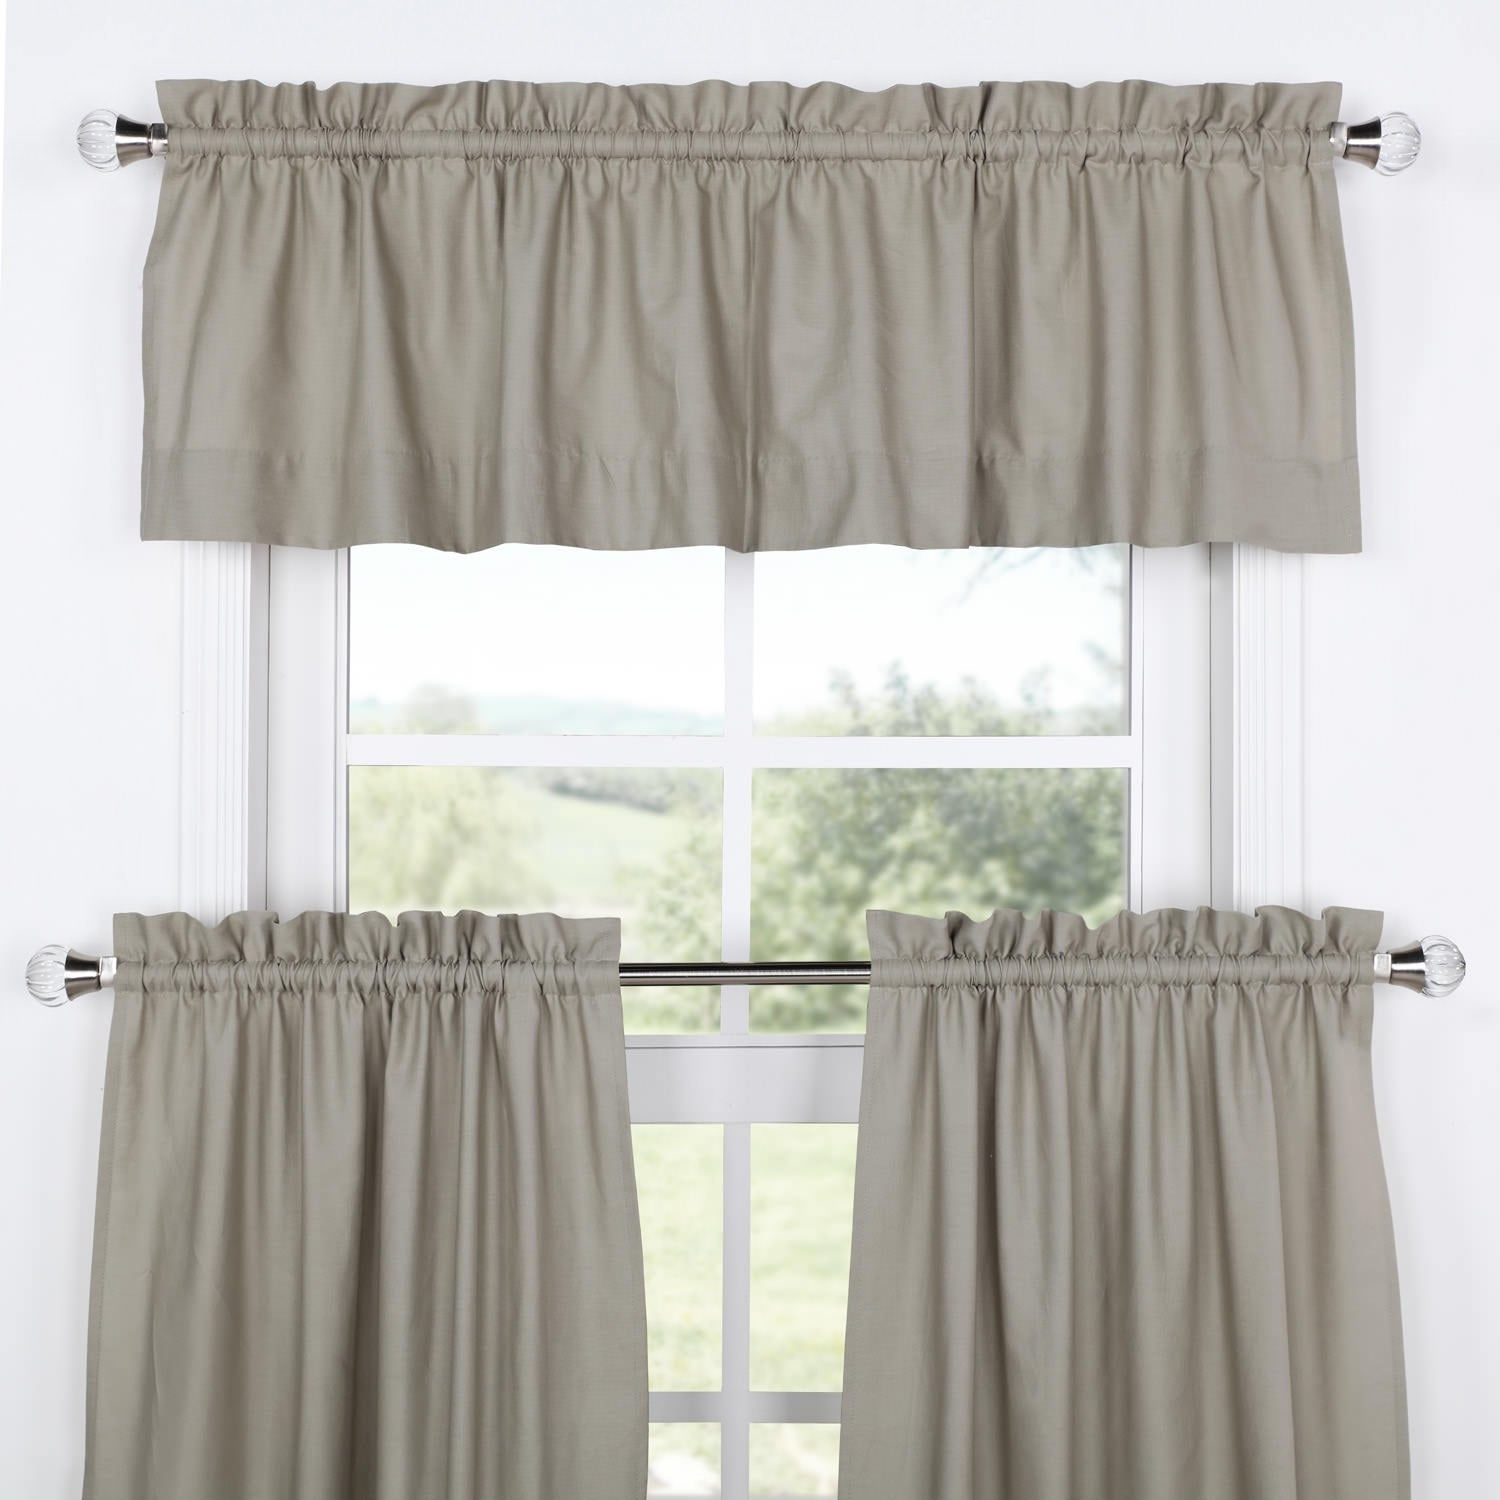 Exclusive Fabrics Solid Cotton Kitchen Tier Curtain & Valance Set (3pc) Inside Bermuda Ruffle Kitchen Curtain Tier Sets (View 19 of 20)